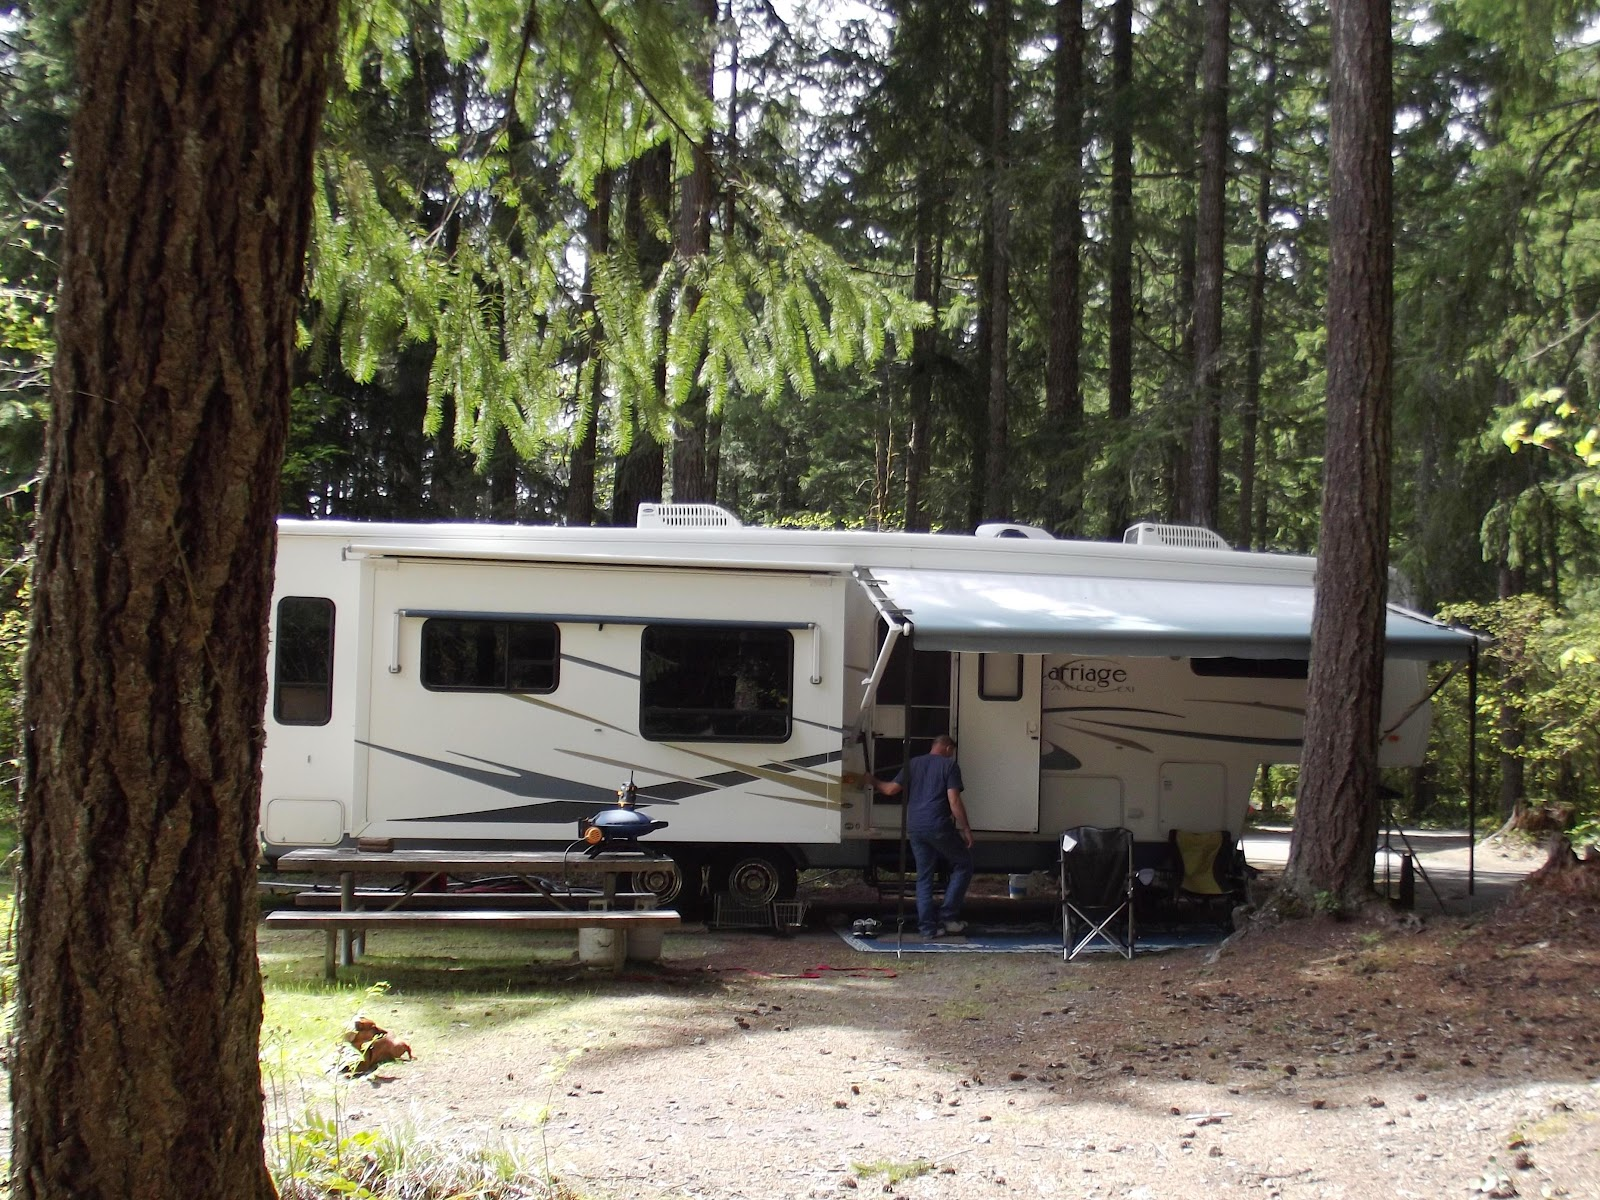 Our Cabin In The Woods For Summer We Are Surrounded By Towering Fir Trees Swift Forest Is A Campground Not An RV Resort There No Hook Ups